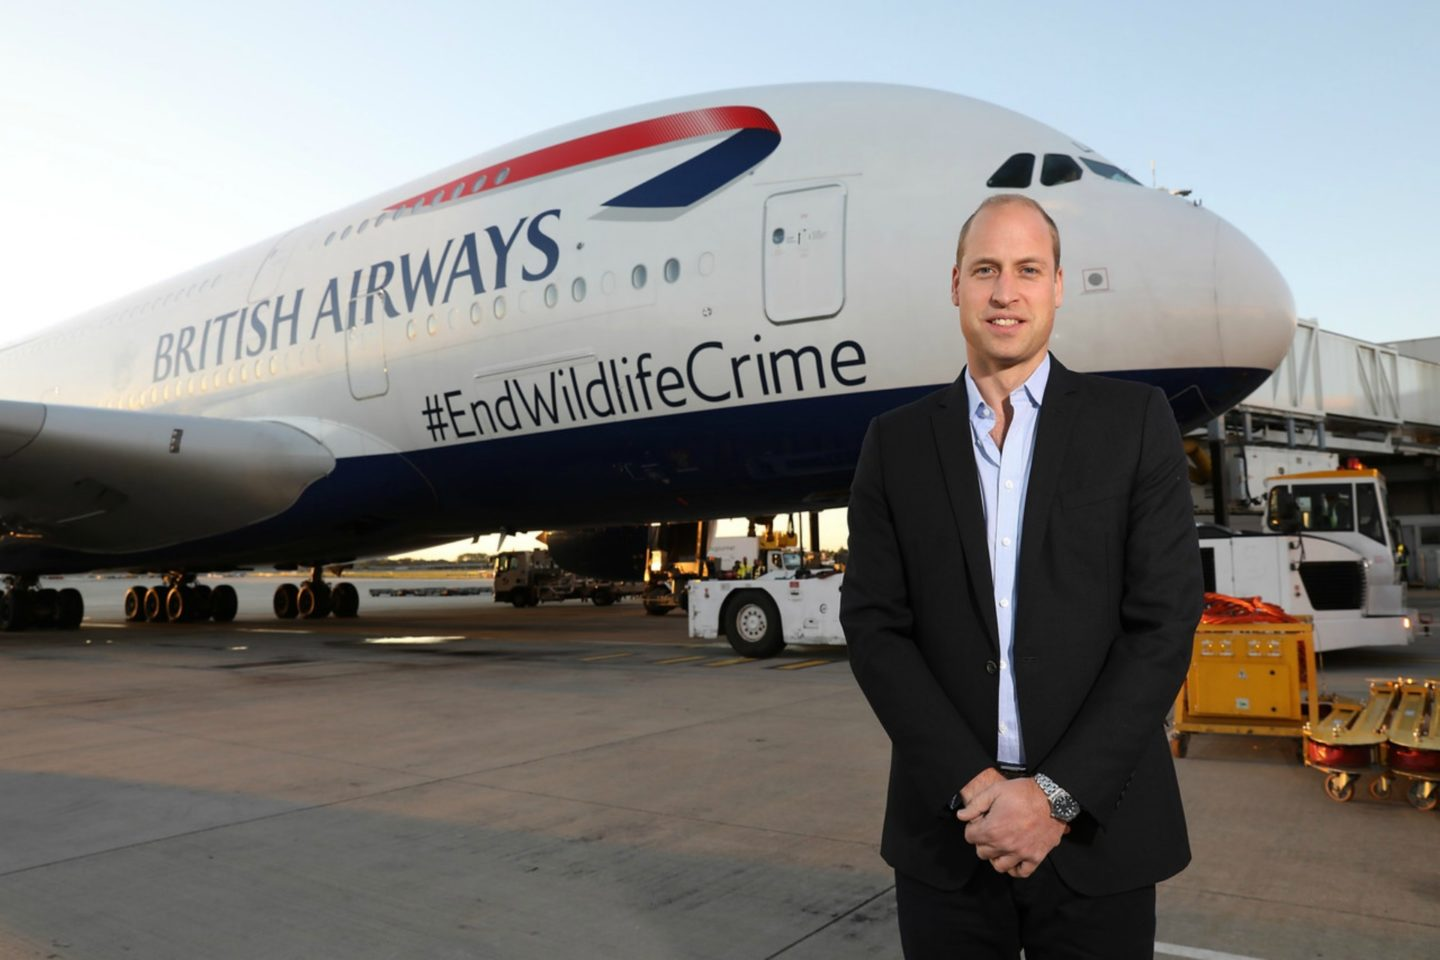 HRH Prince William, The Duke of Cambridge departs Heathrow on a British Airways A380 aircraft displaying the message #EndWildlifeCrime, on September 23, 2018 in London, England. The flight is kicking off a mission to highlight the urgent global threat to wildlife and people from the illegal wildlife trade.